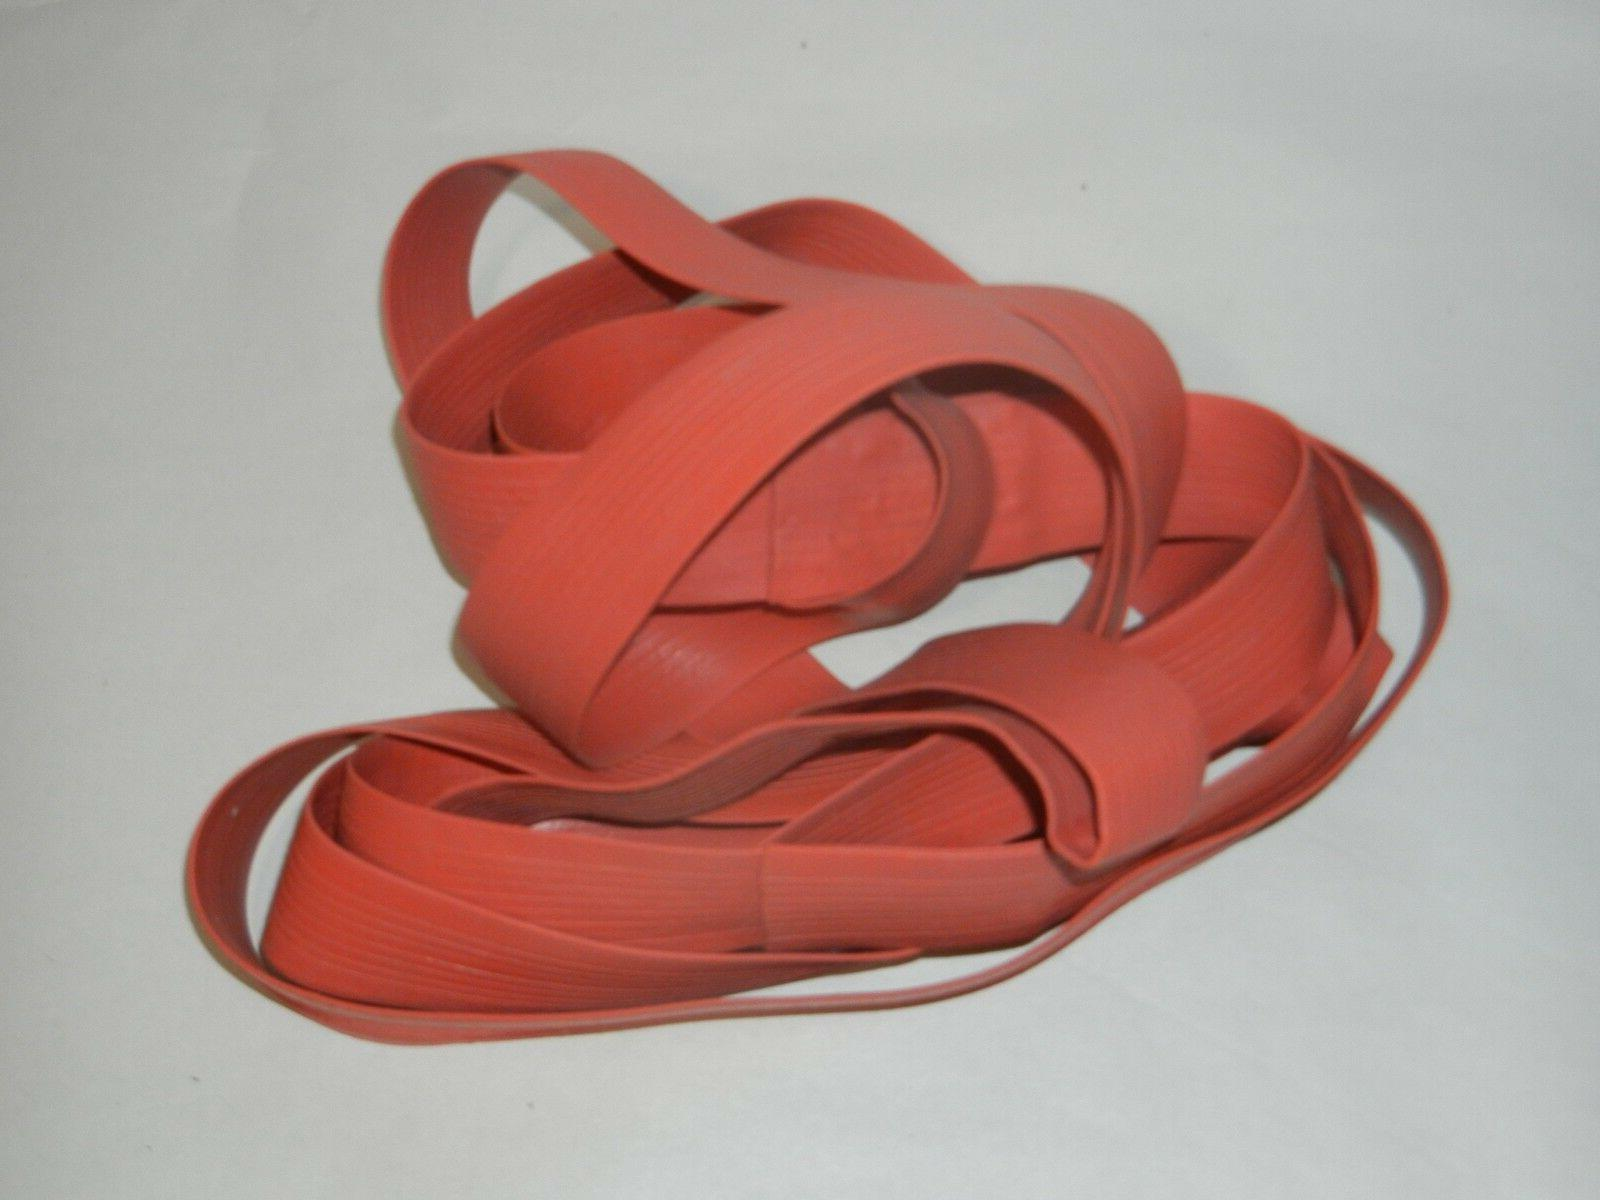 xxx heavy red resistance band latex free